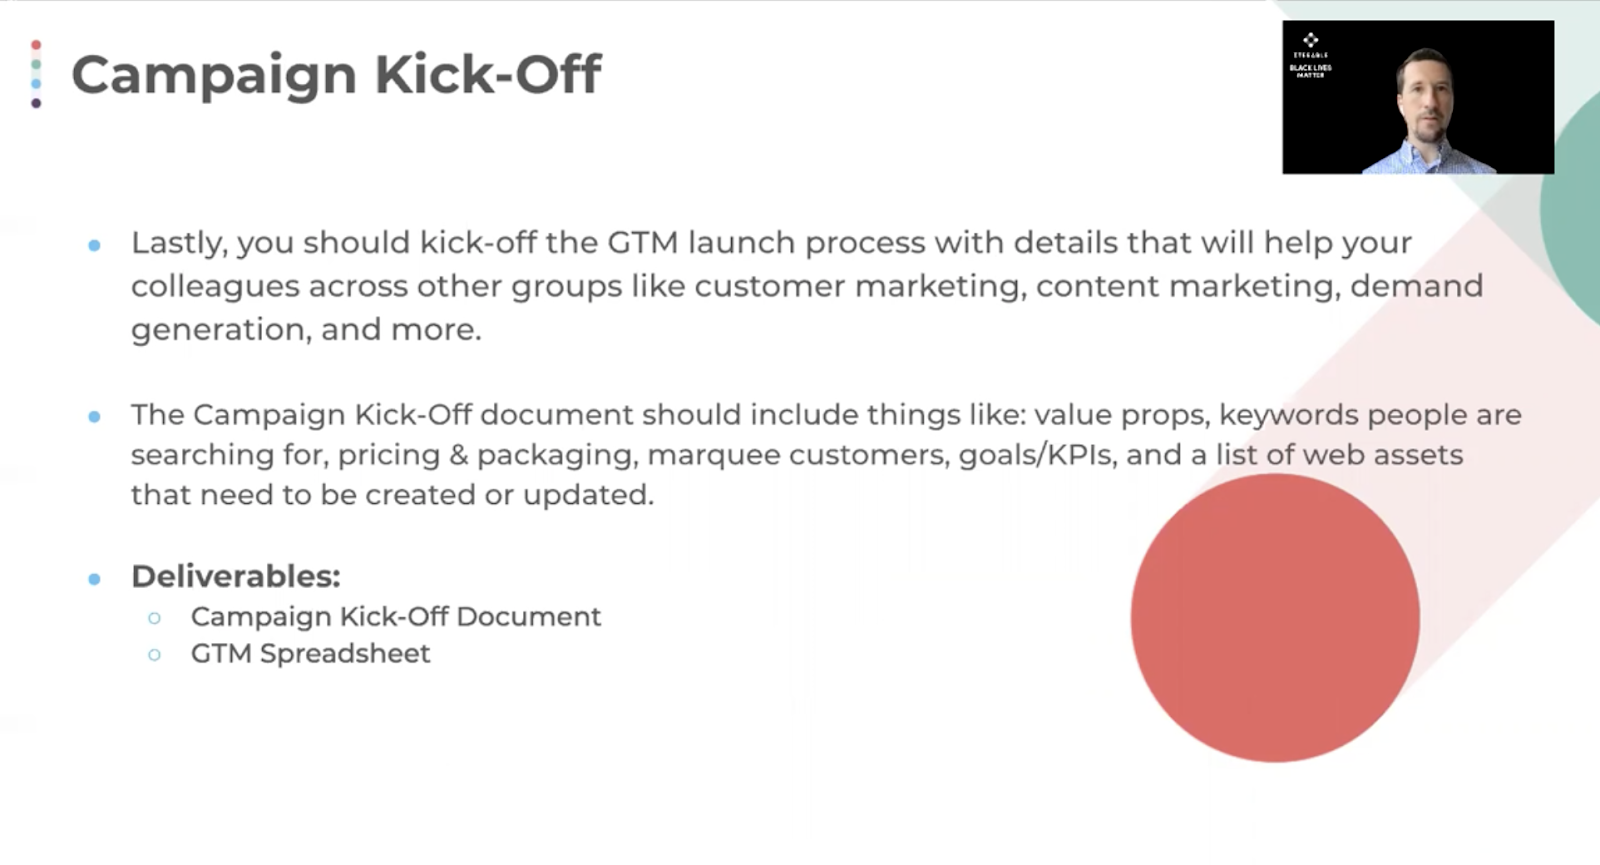 A campaign kick-off document outlines the essentials of your launch.